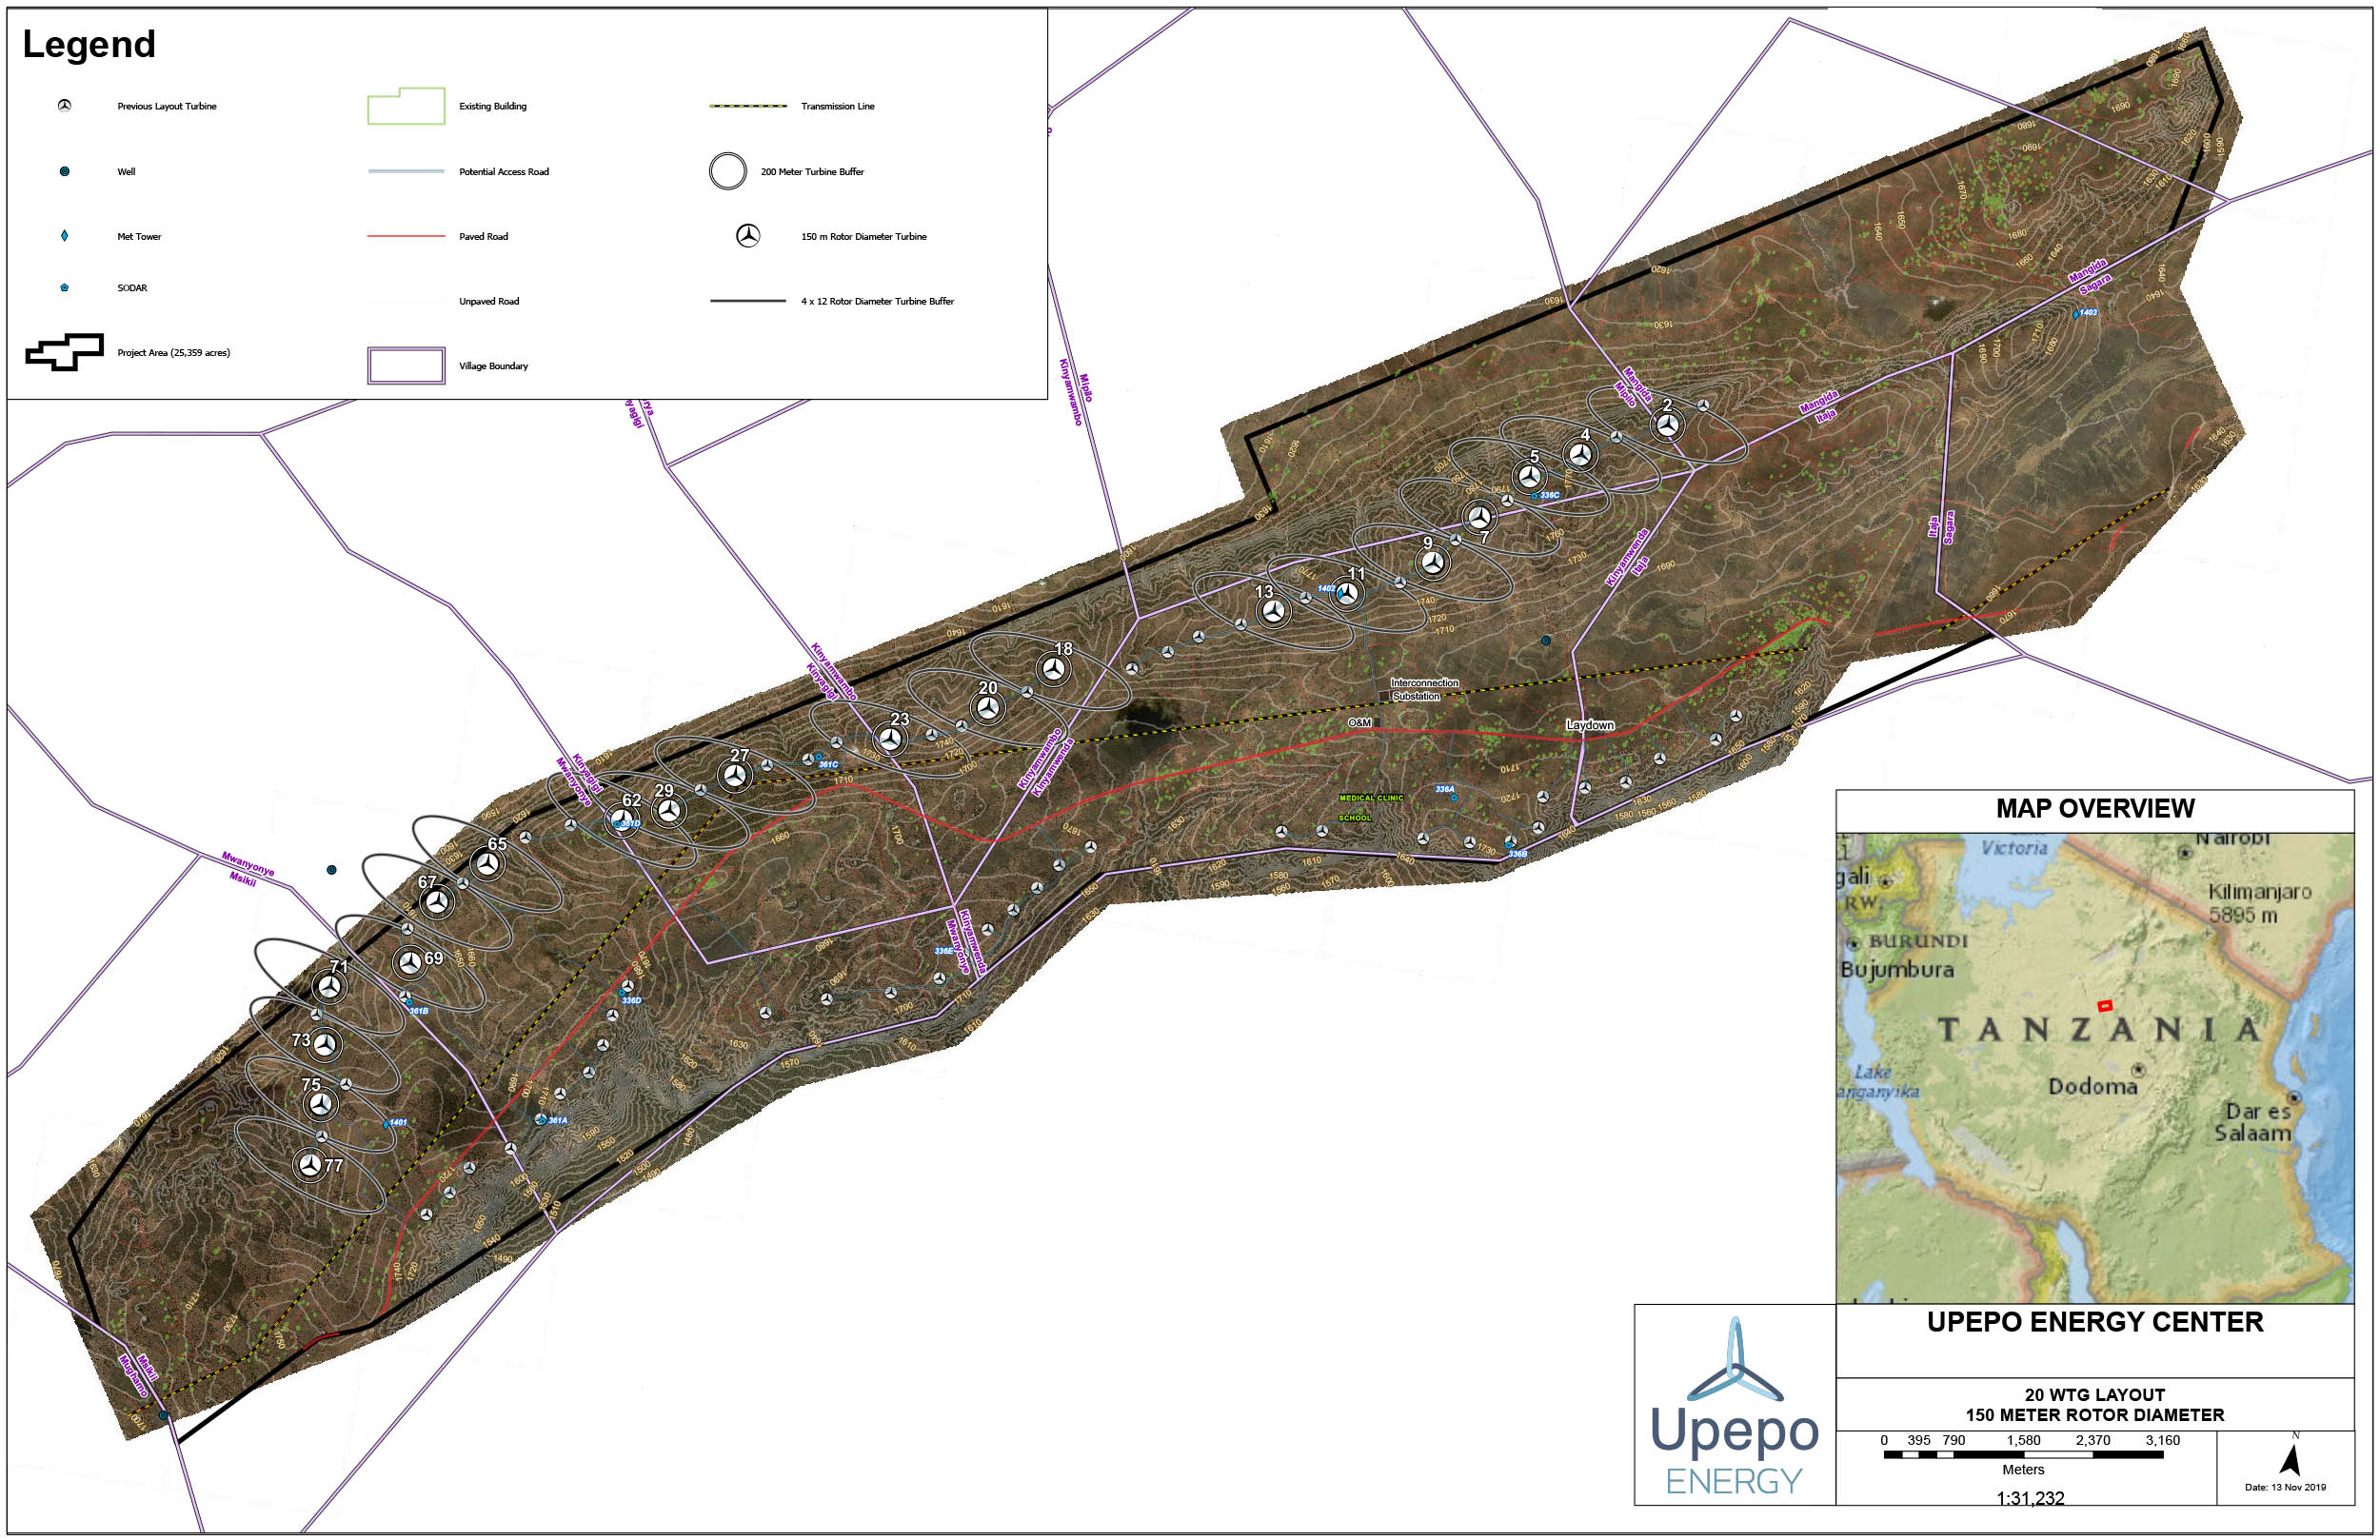 This site layout highlights the turbine locations, roads and the substation for the 100MW first phase of the Upepo Energy Center.